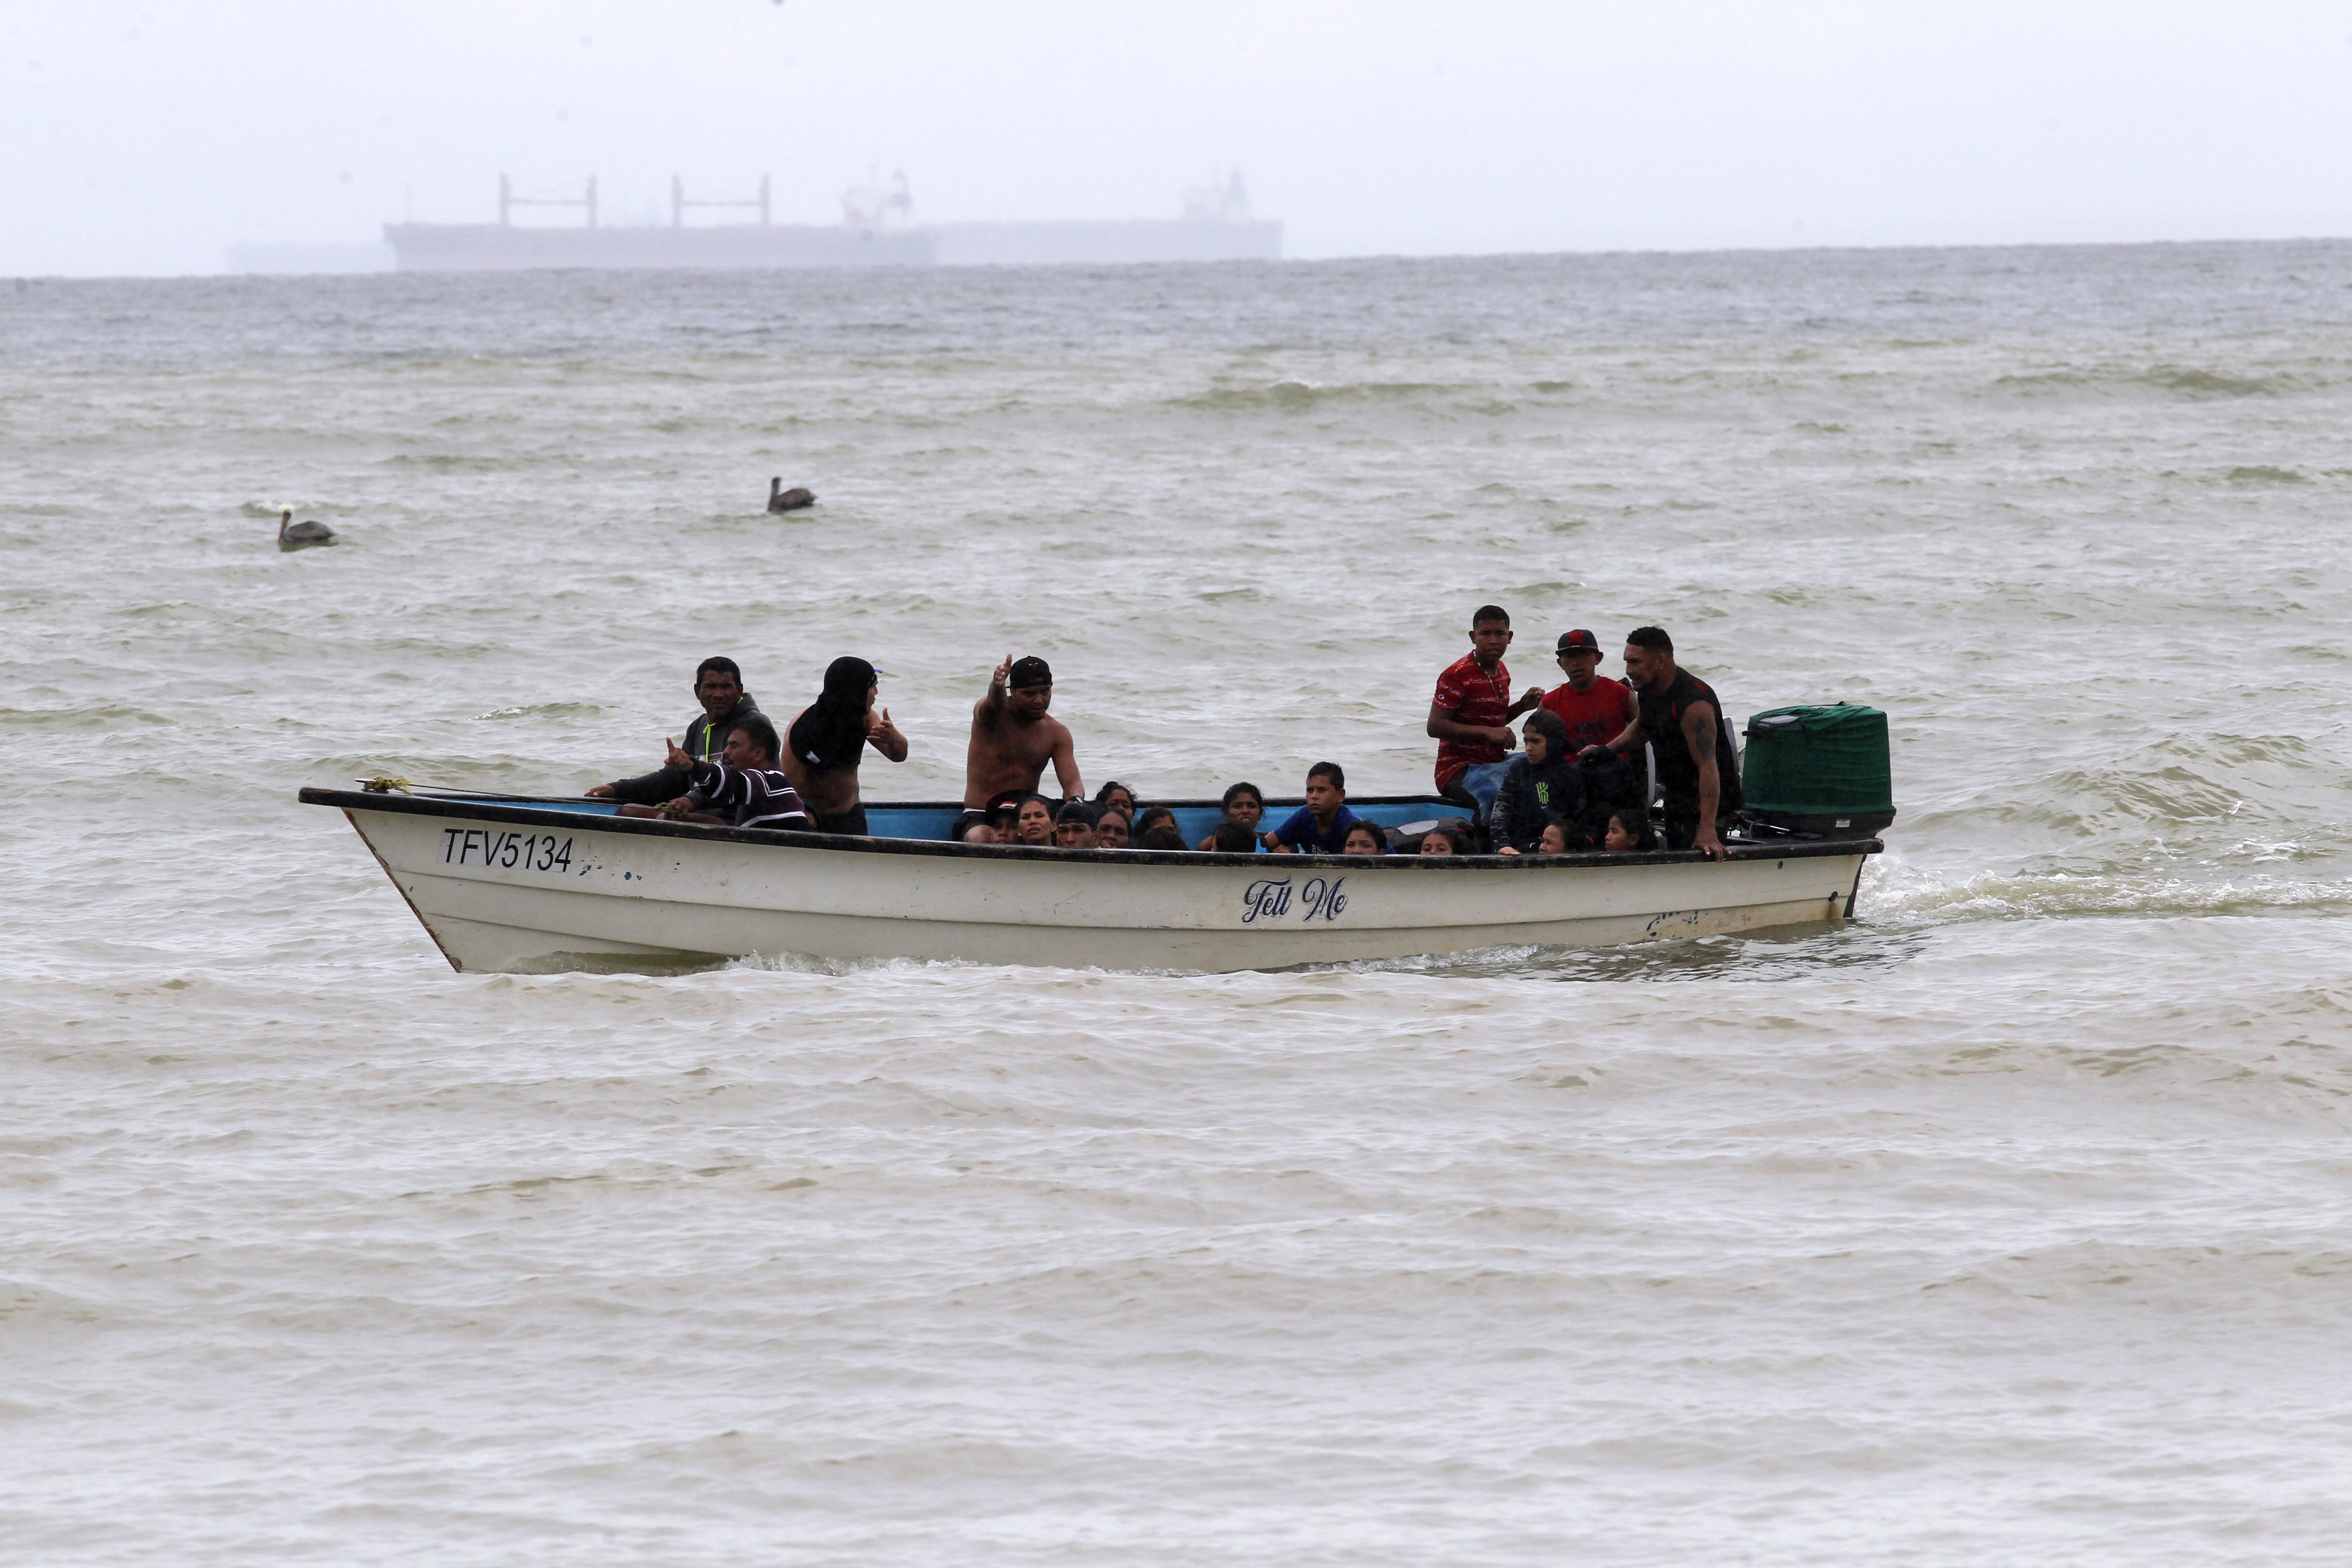 Venezuelan migrants, who were recently deported, arrive at shore on Los Iros Beach after their return to the island, in Erin, Trinidad and Tobago, November 24, 2020. Lincoln Holder/Courtesy Newsday/Handout via REUTERS